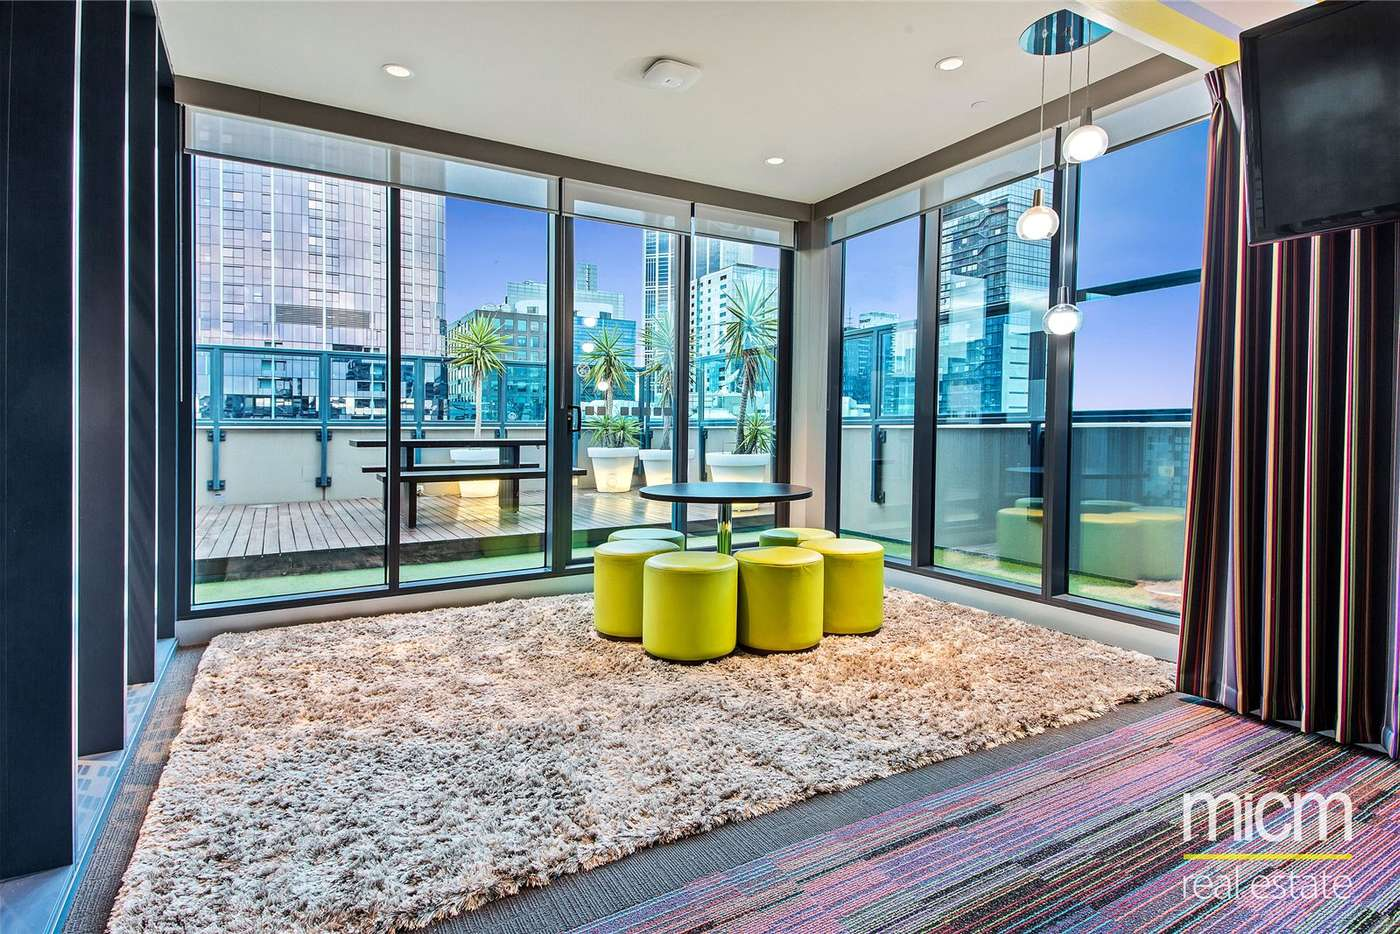 Seventh view of Homely apartment listing, 512/181 ABeckett Street, Melbourne VIC 3000